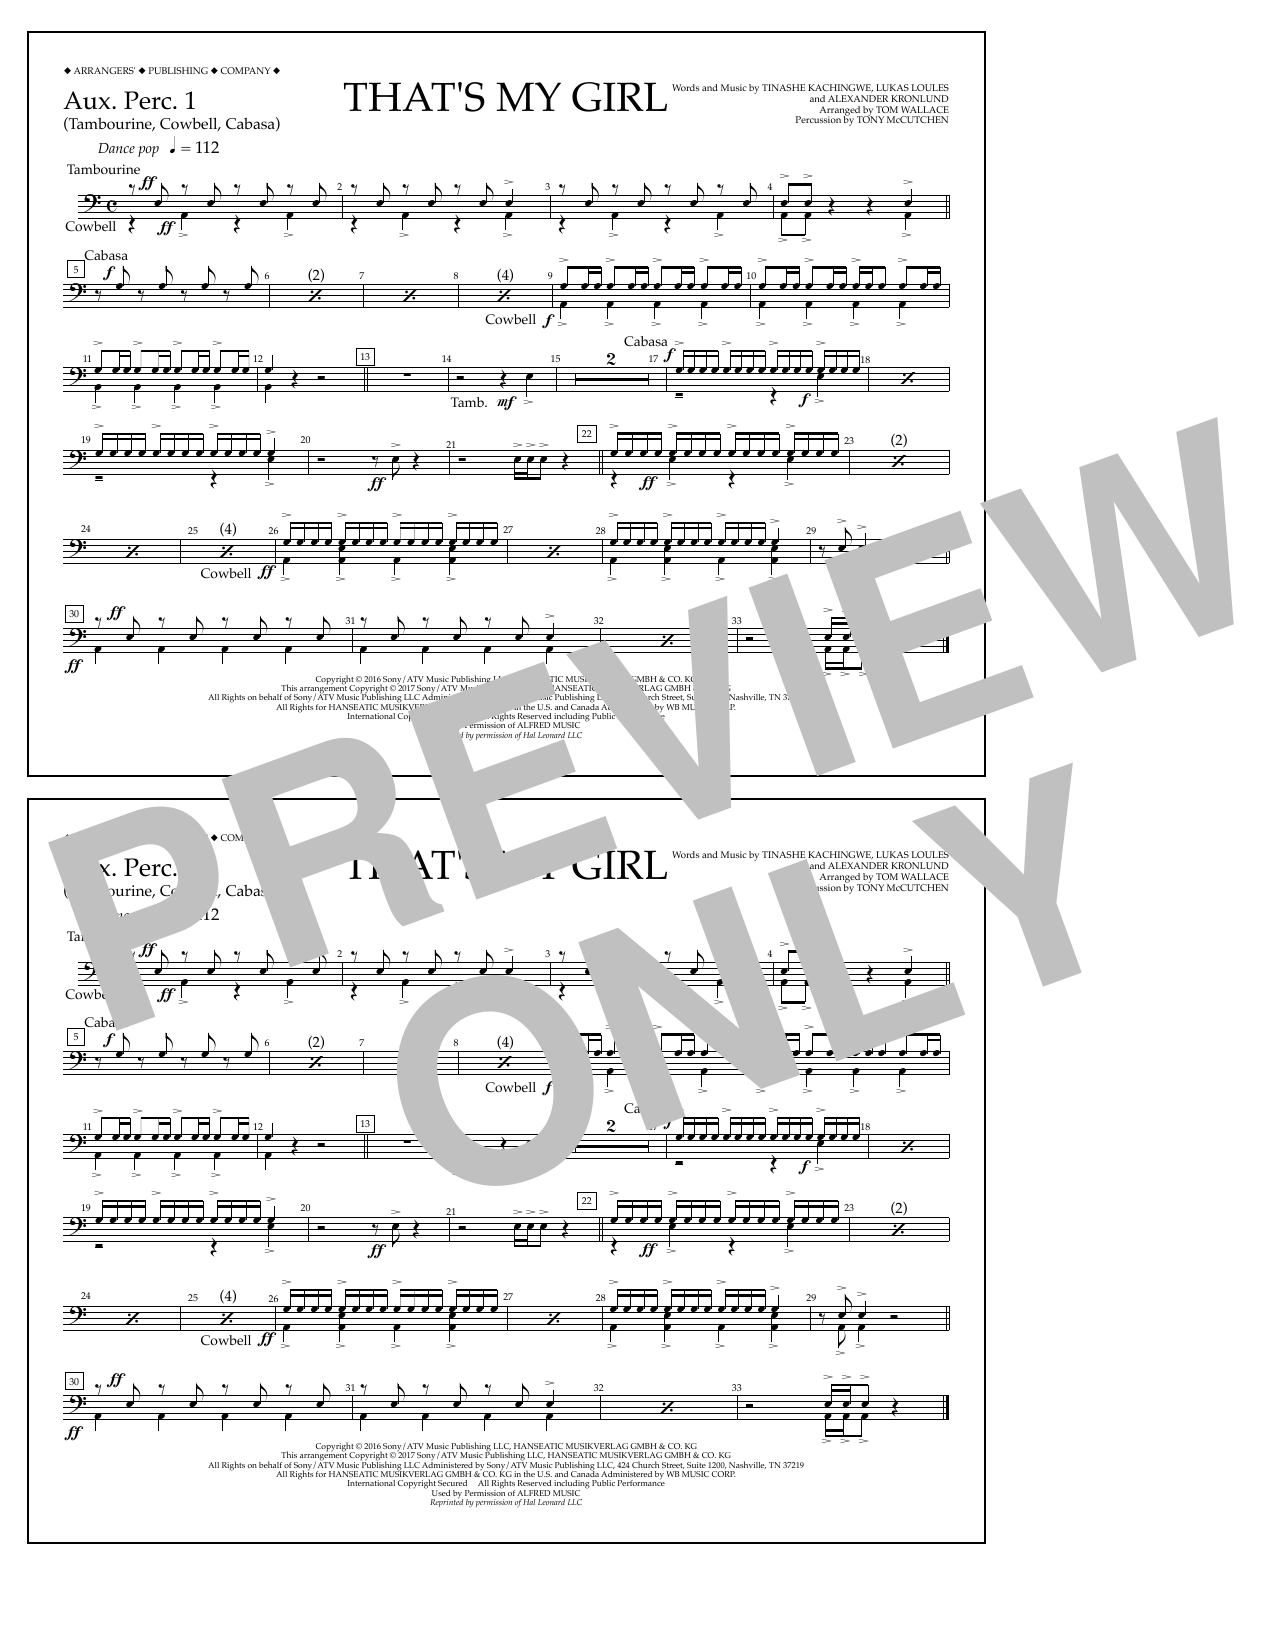 That's My Girl - Aux. Perc. 1 Sheet Music